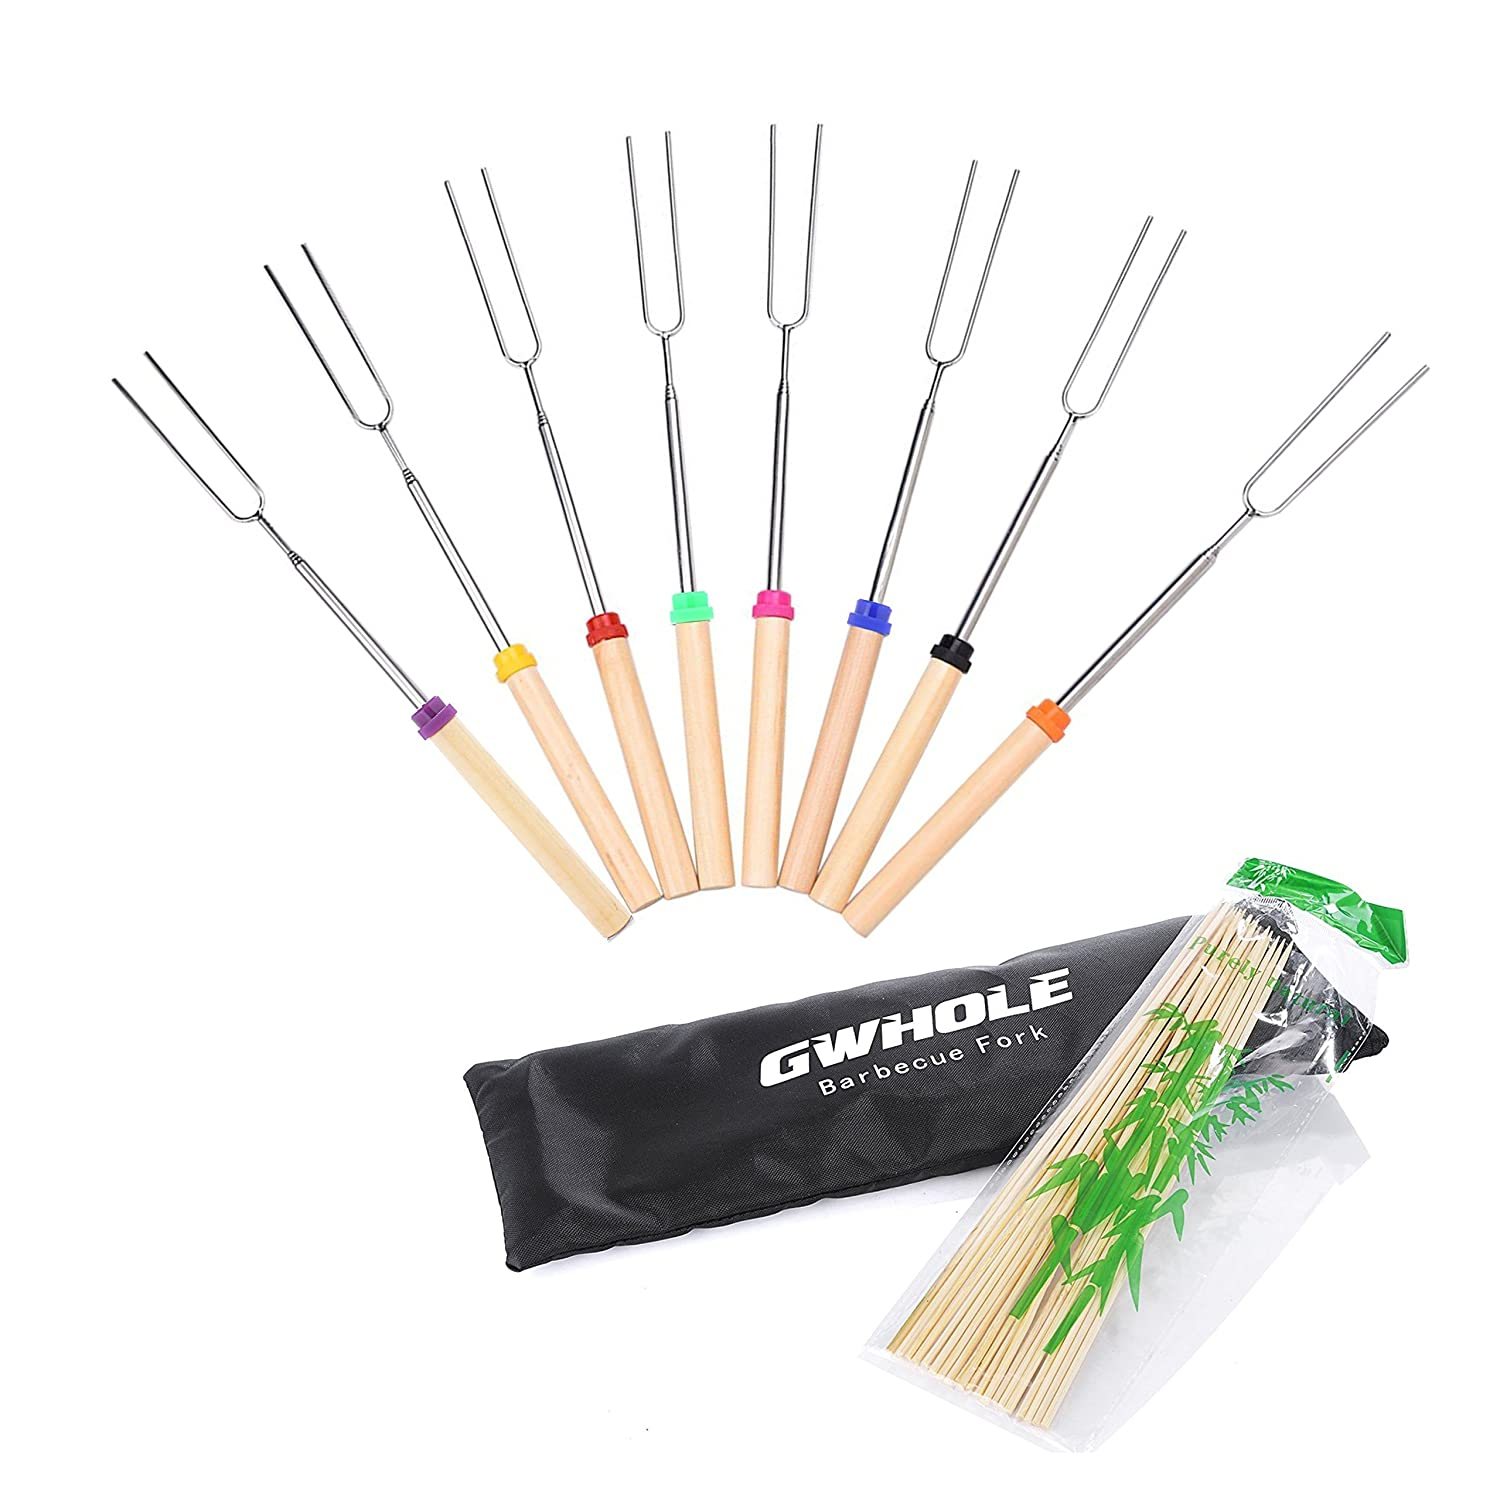 GWHOLE Extendable Marshmallow Roasting Sticks BBQ Forks 31-82cm with Bamboo Sticks and Canvas Pouch, Set of 8 [One Year Warranty]